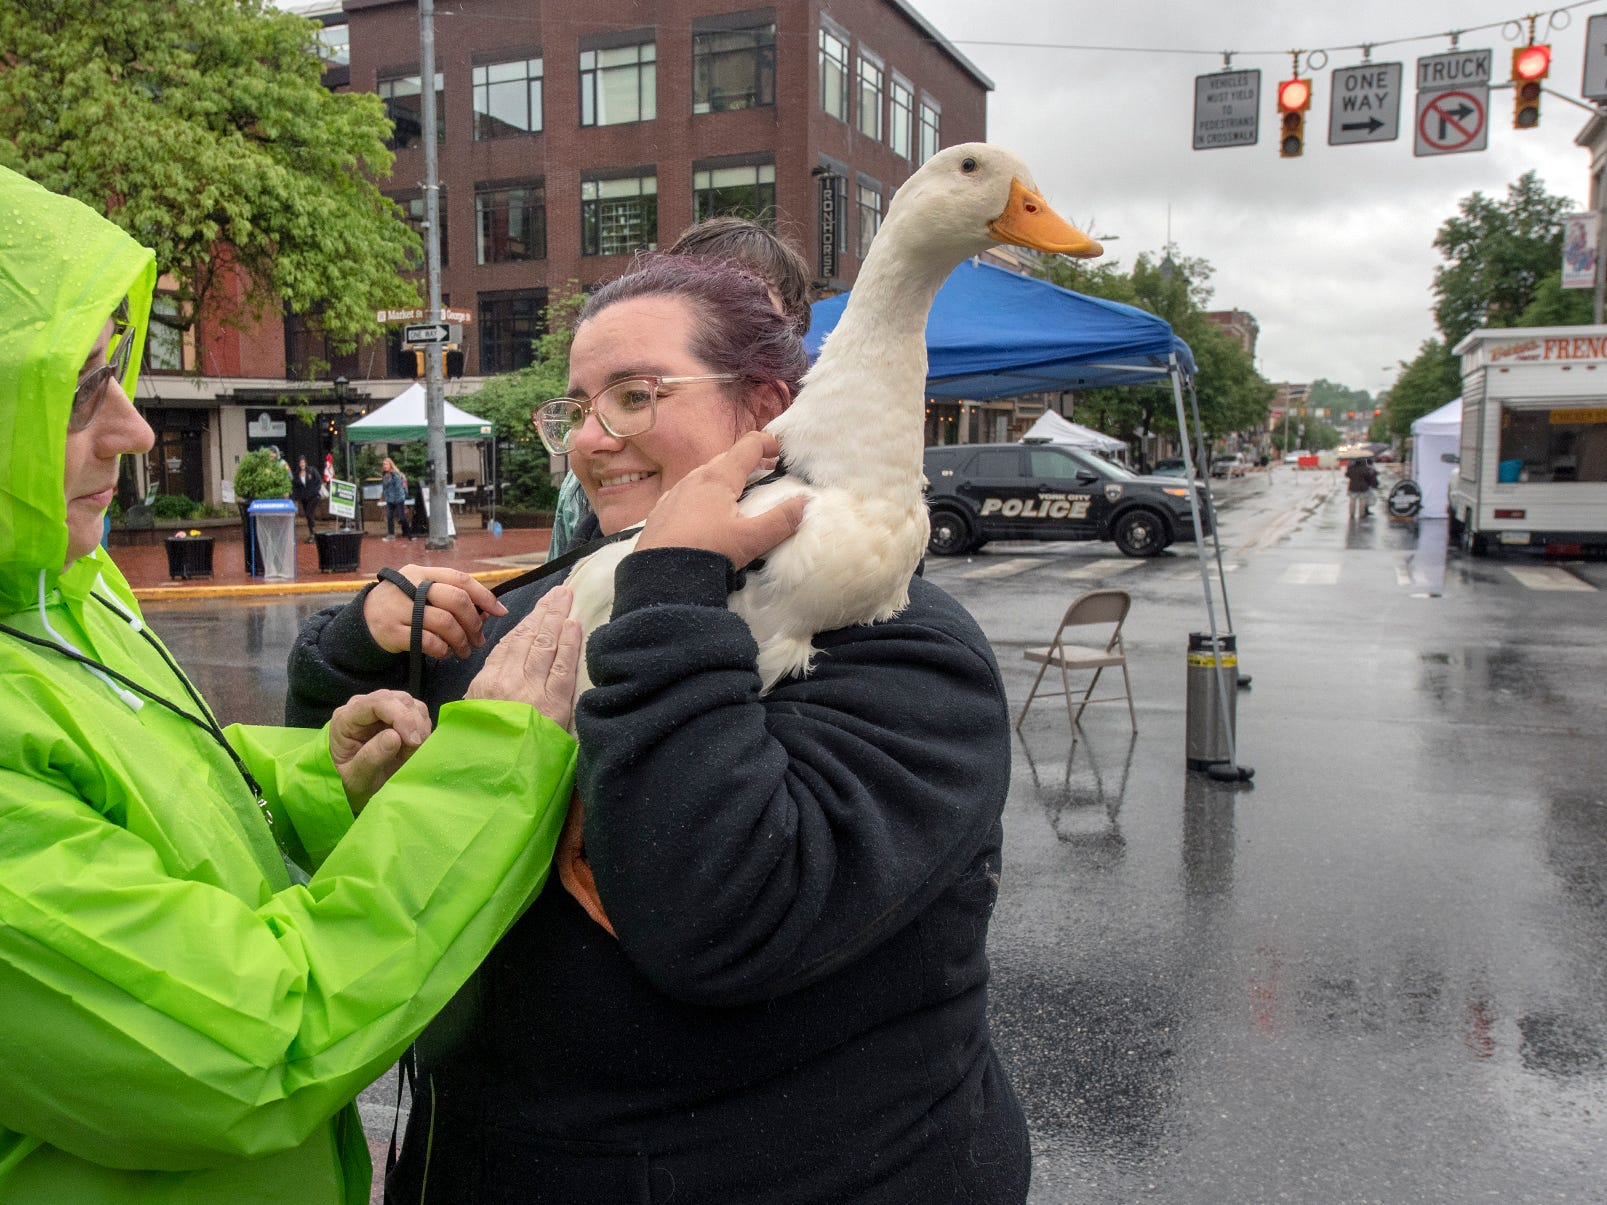 Mary Yeaple, event planner, pets Phil the duck held by Nicole Pauling during the 44th Annual Olde York Street Fair. Phil was part of the Atomic Bounce petting zoo featured in the Kid's Fun Bock. Pauling said that Phil was very interested in the puddles.